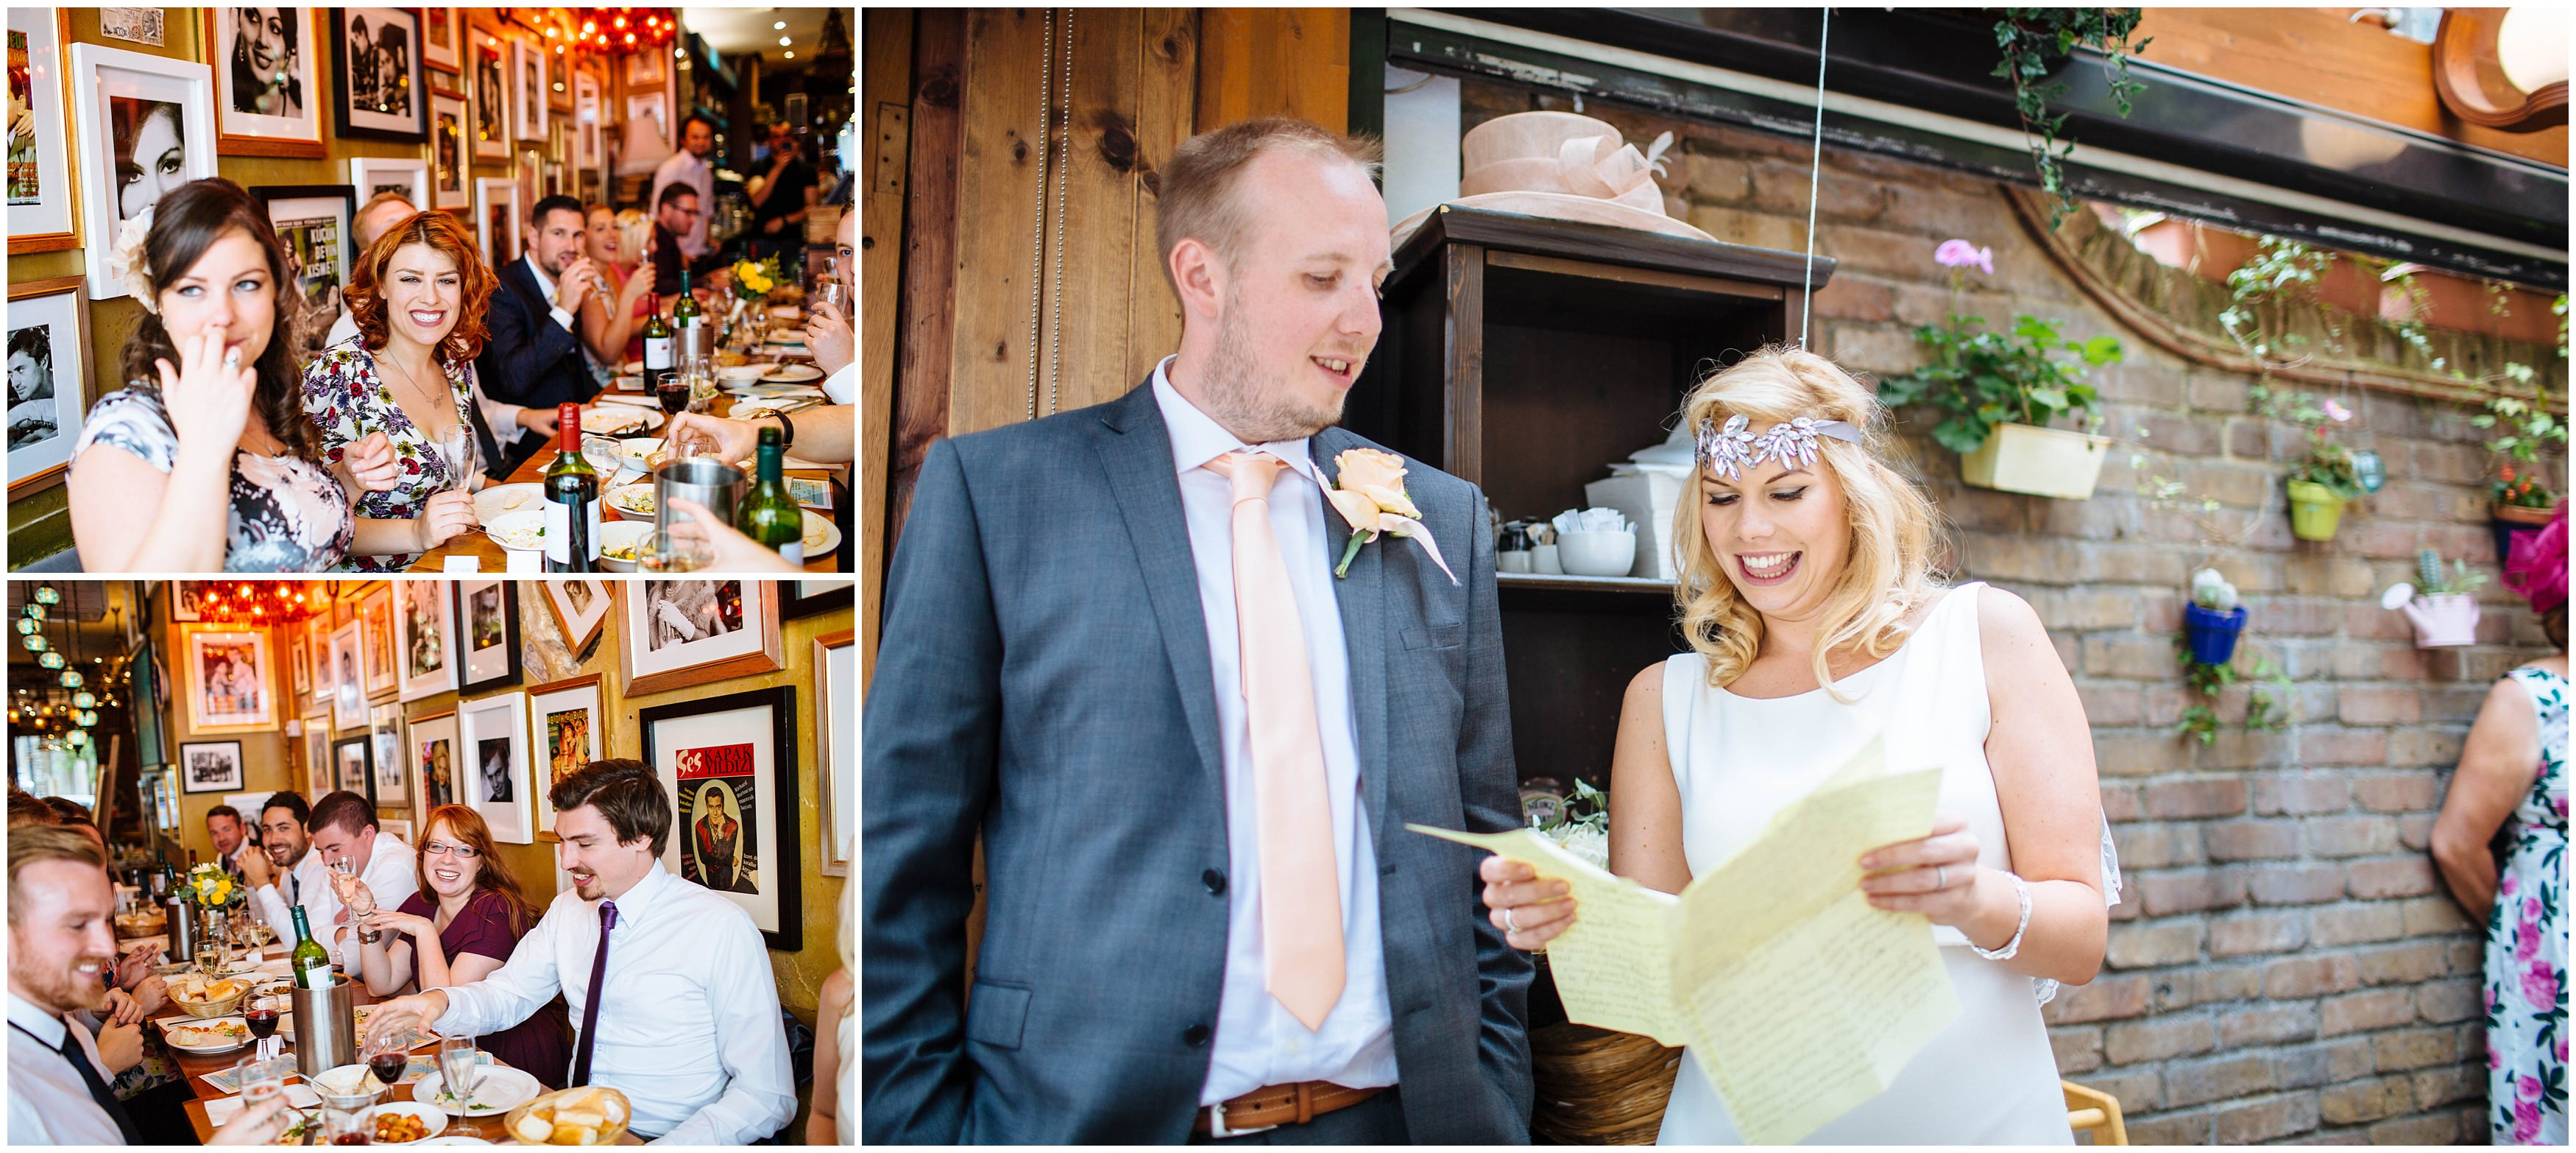 Jess and James\' Fun and Relaxed London Cinema Wedding - Laura ...